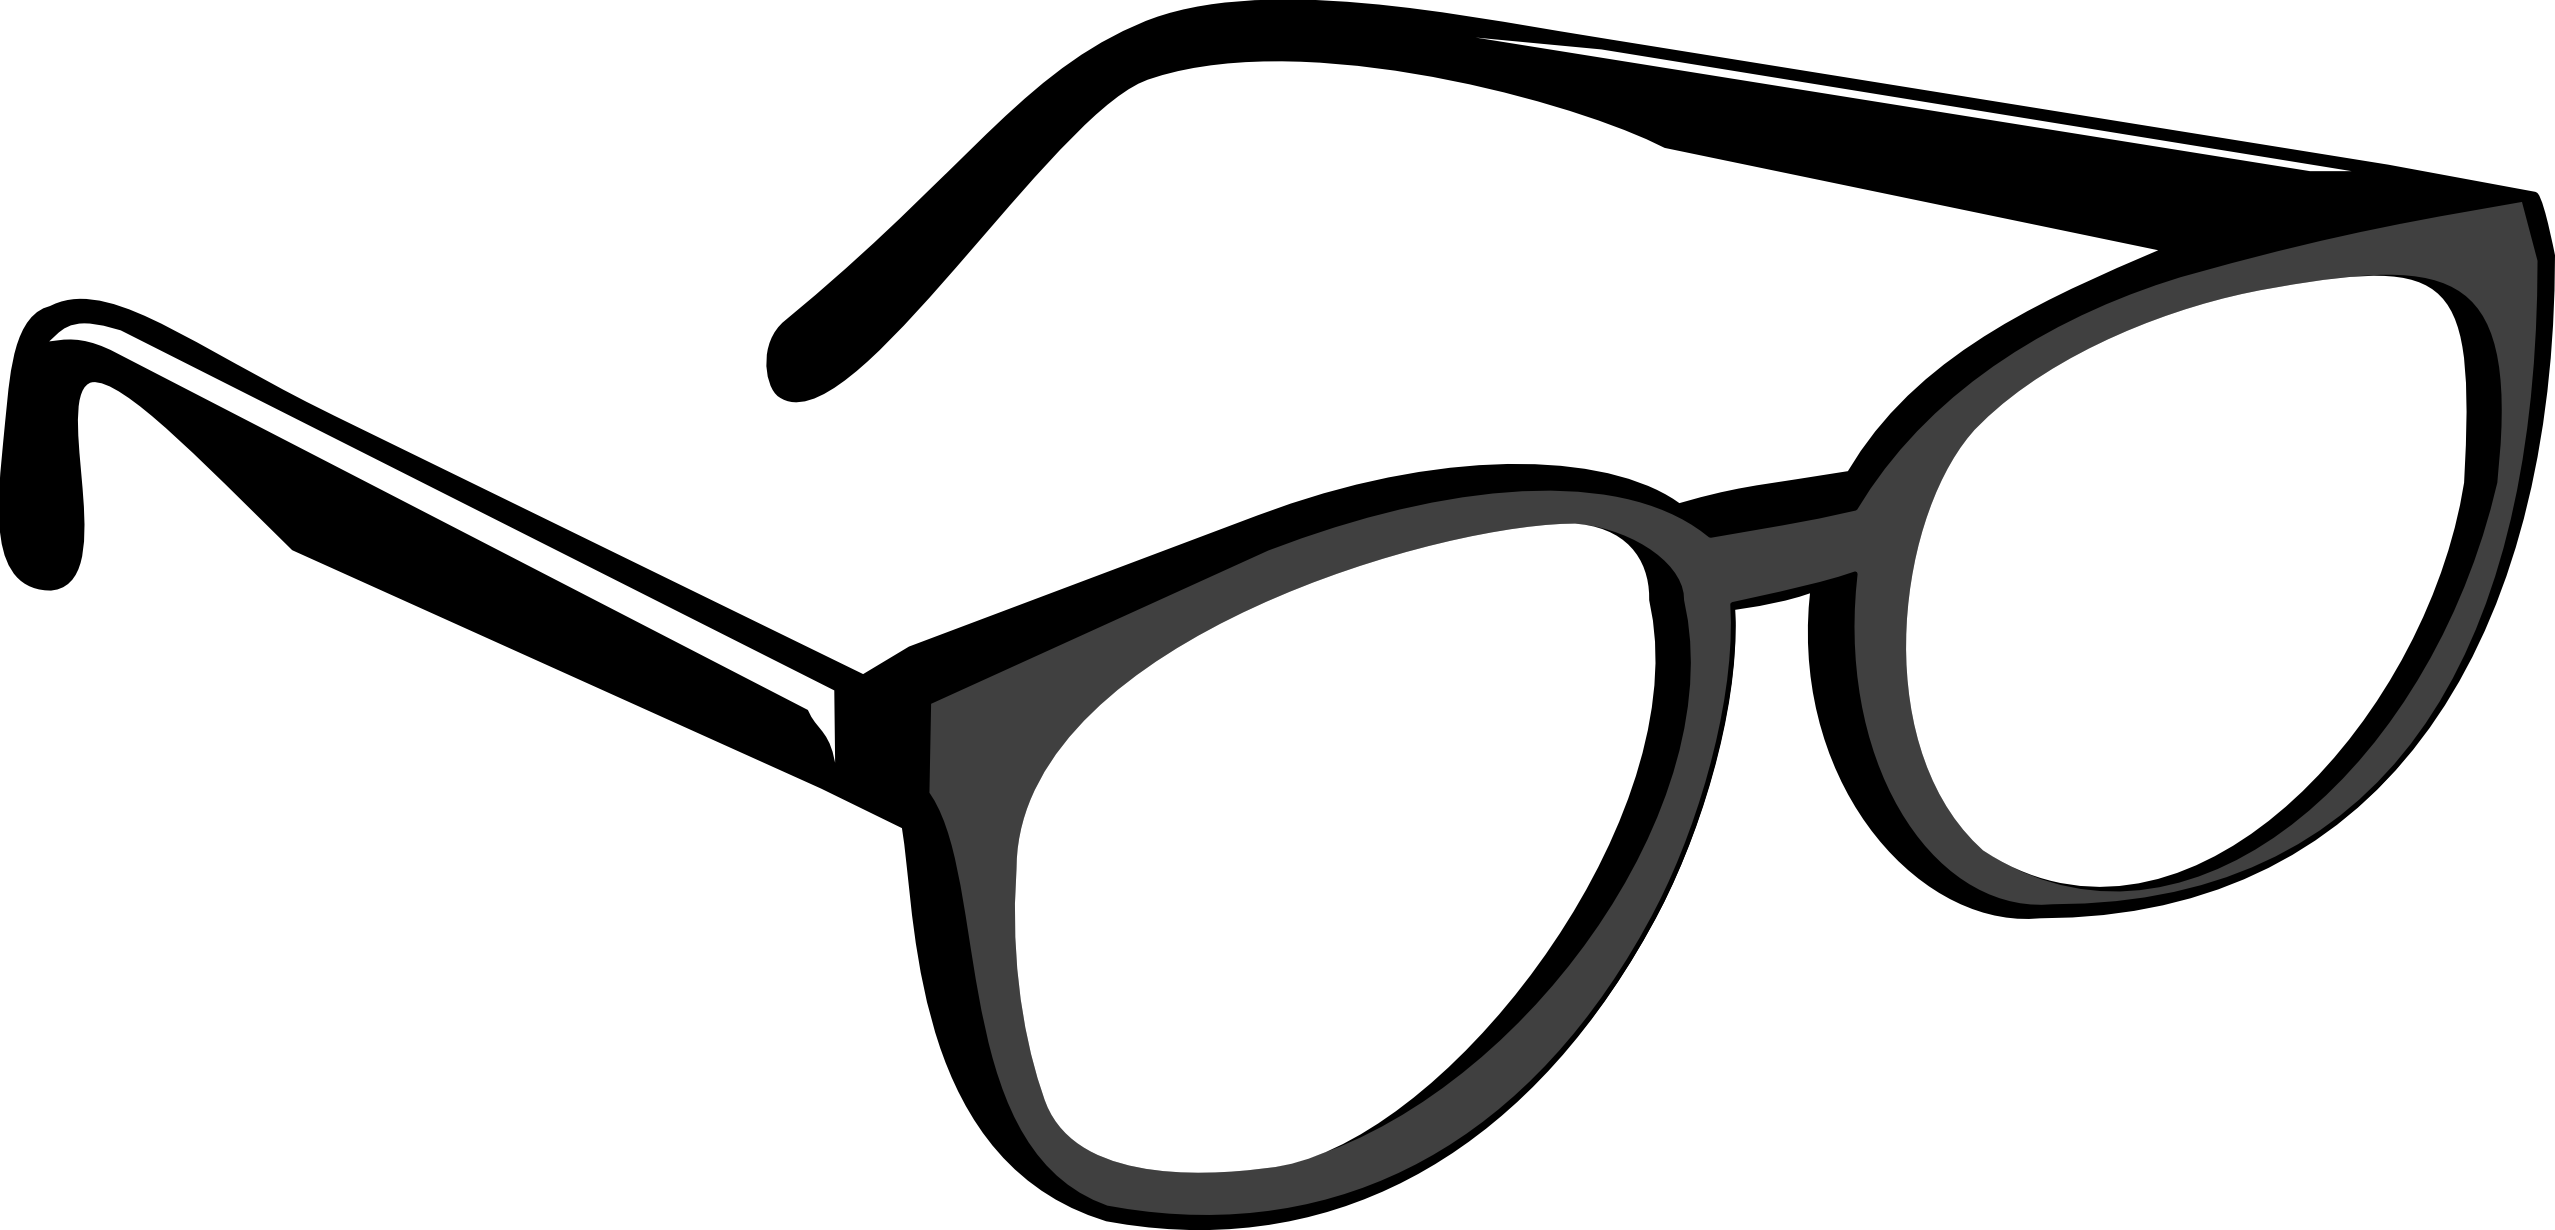 Glasses Clipart Black And White | Clipart Panda - Free ...